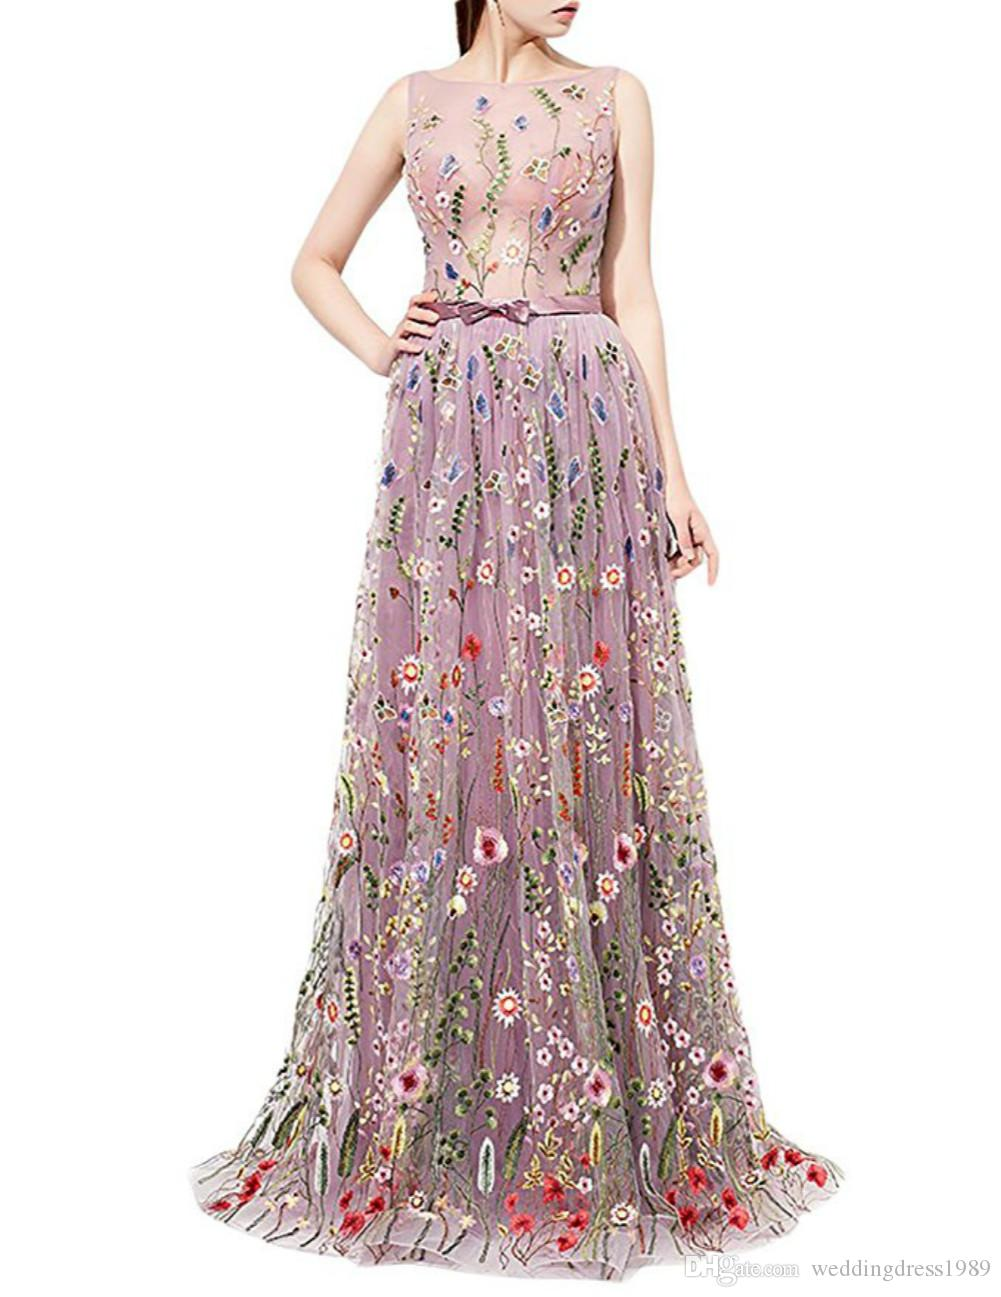 Trendy Floral Embroidery Sheer Evening Dresses 2018 Illusion Flower Plus  Size Sexy Lady Dress Long Party Dress Prom Gowns Celebrity Pageant Evening  Dress ... 85c32cf28